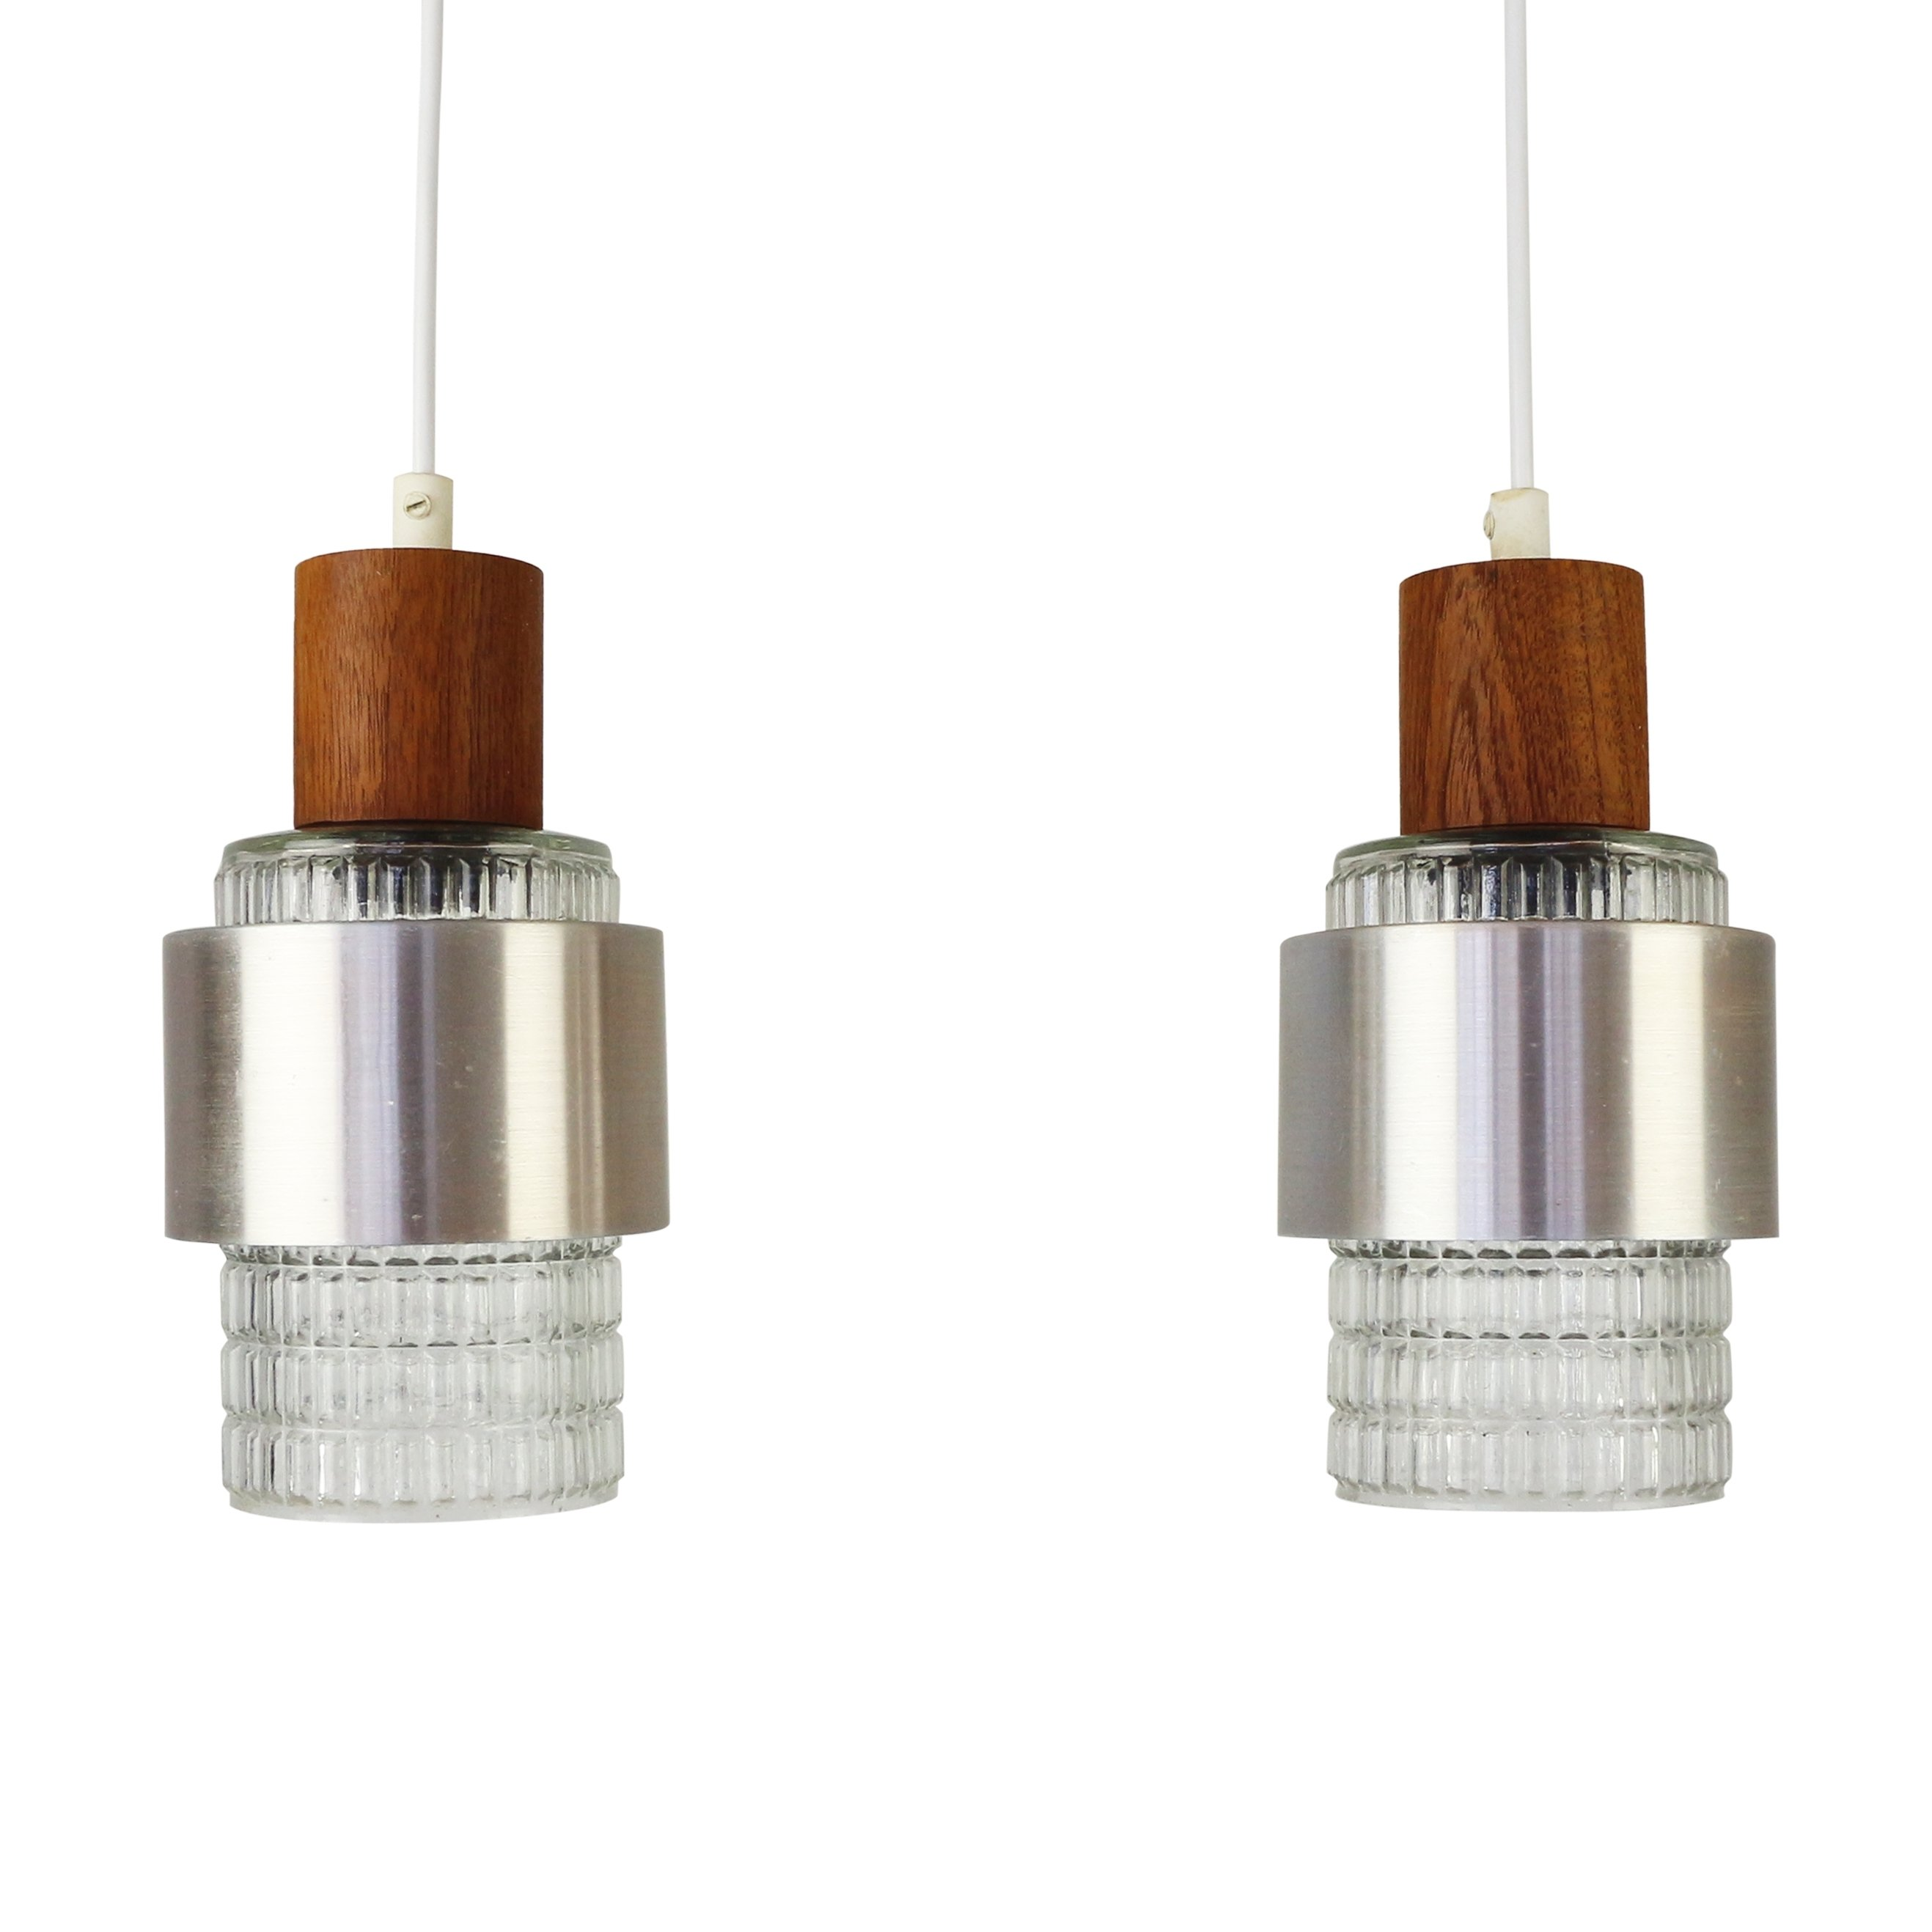 Pair of danish design pendant lights 1960s 63558 pair of danish design pendant lights 1960s mozeypictures Image collections